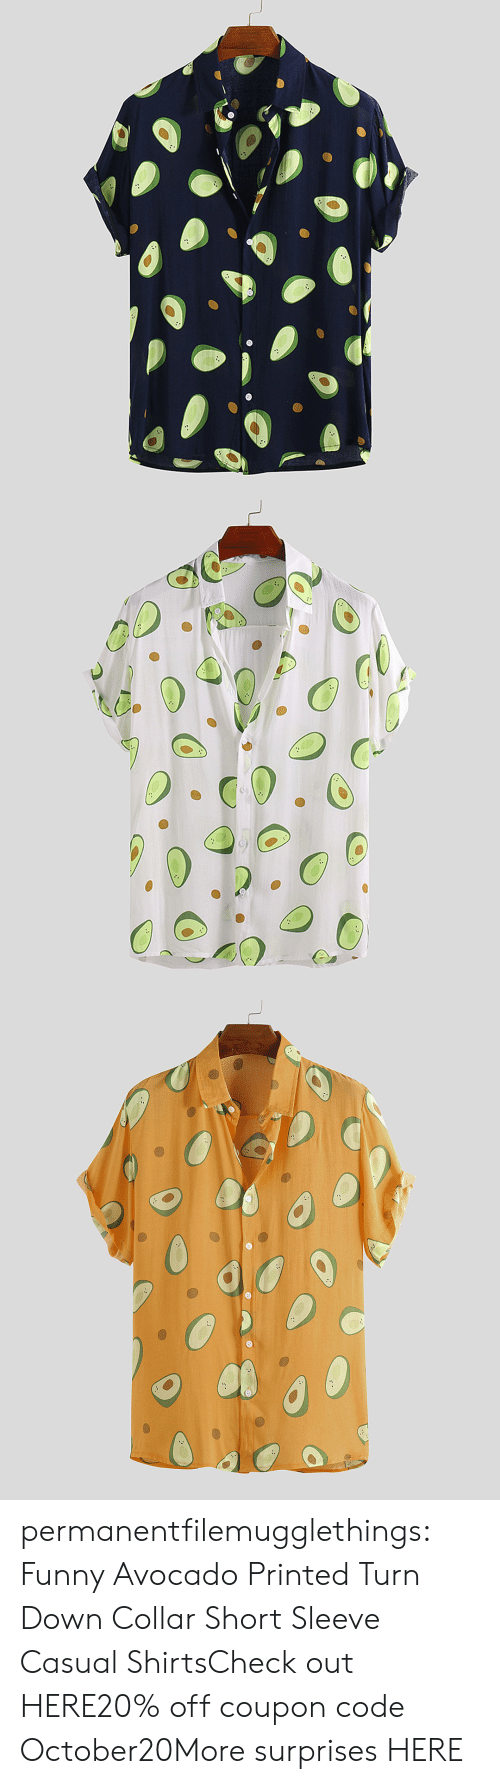 Funny, Tumblr, and Avocado: permanentfilemugglethings:  Funny Avocado Printed Turn Down Collar Short Sleeve Casual ShirtsCheck out HERE20% off coupon code:October20More surprises HERE